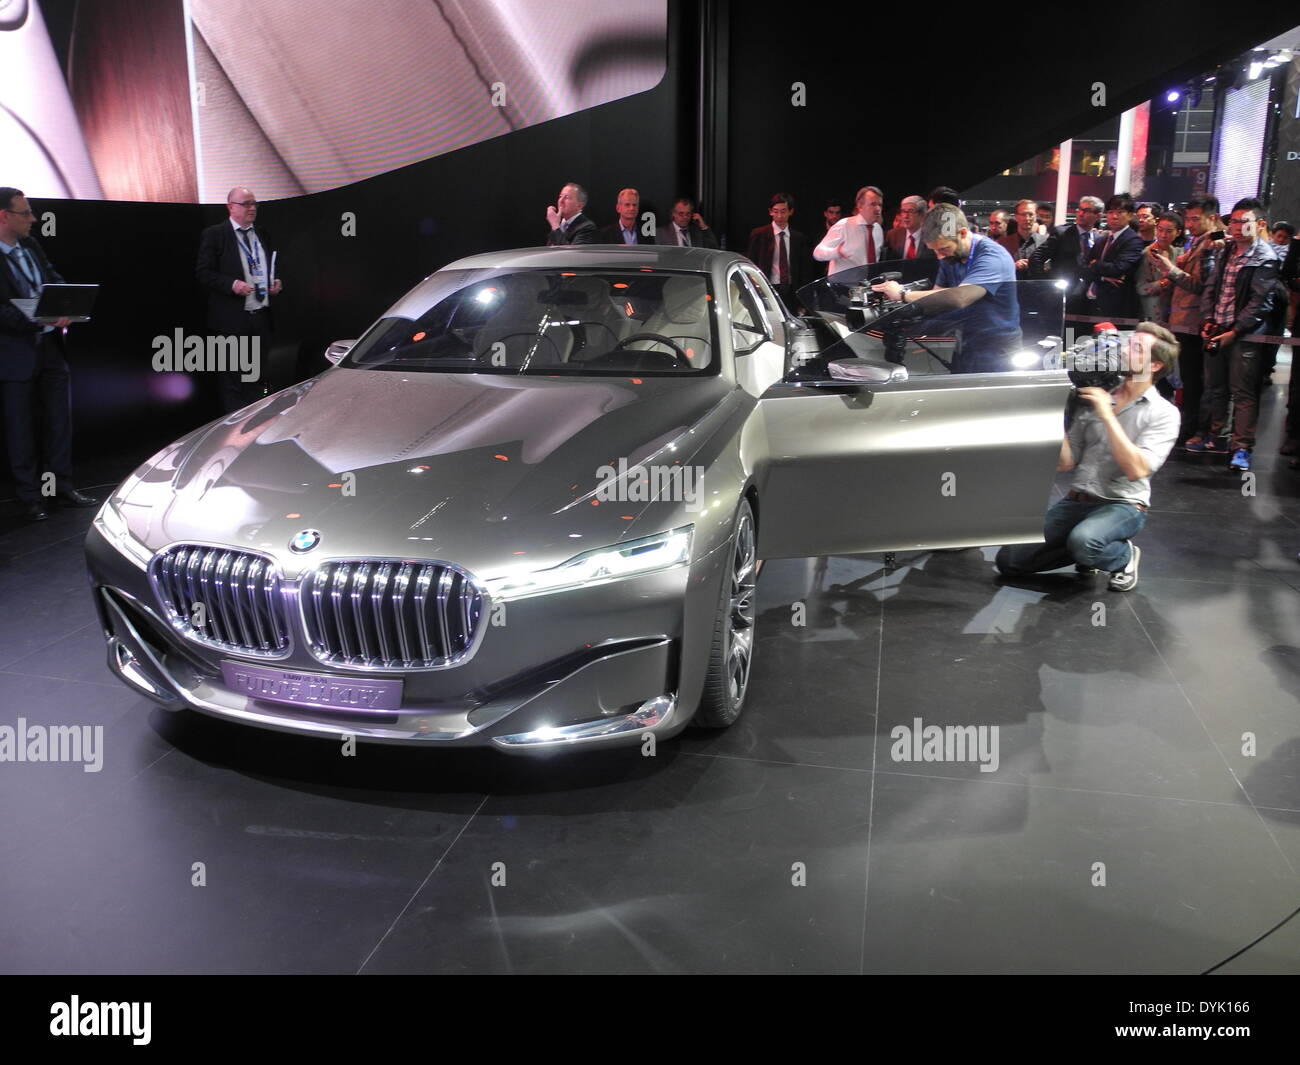 Luxury Car Vision >> Beijing China 20th Apr 2014 The Concept Car Vision Future Stock